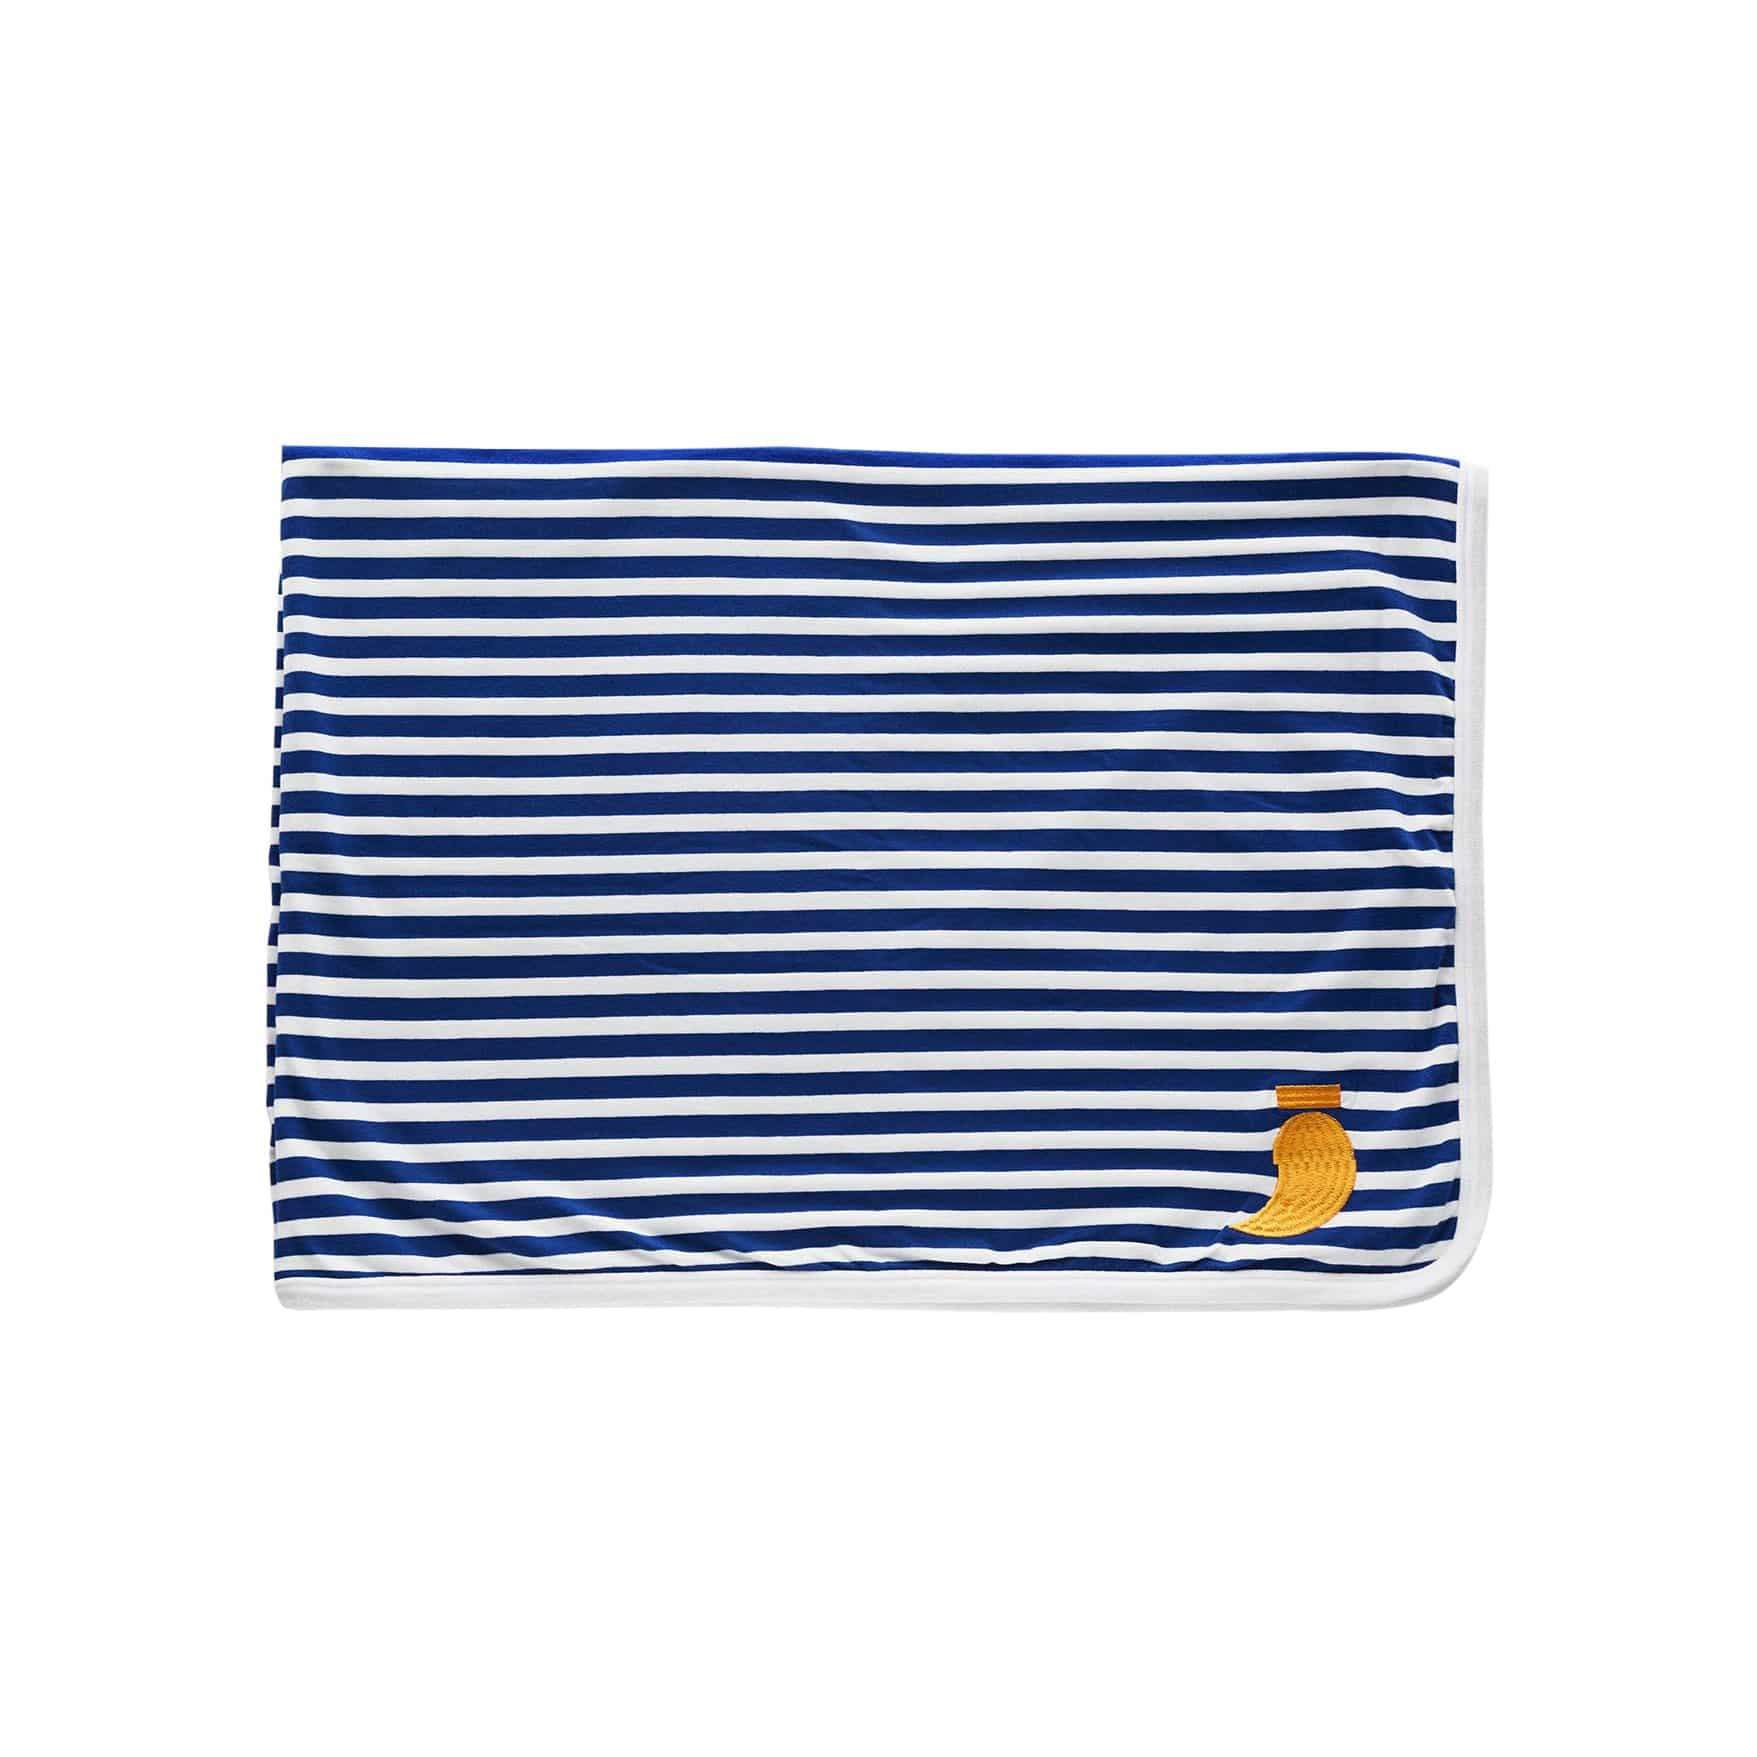 Double Sided Blue Striped Blanket